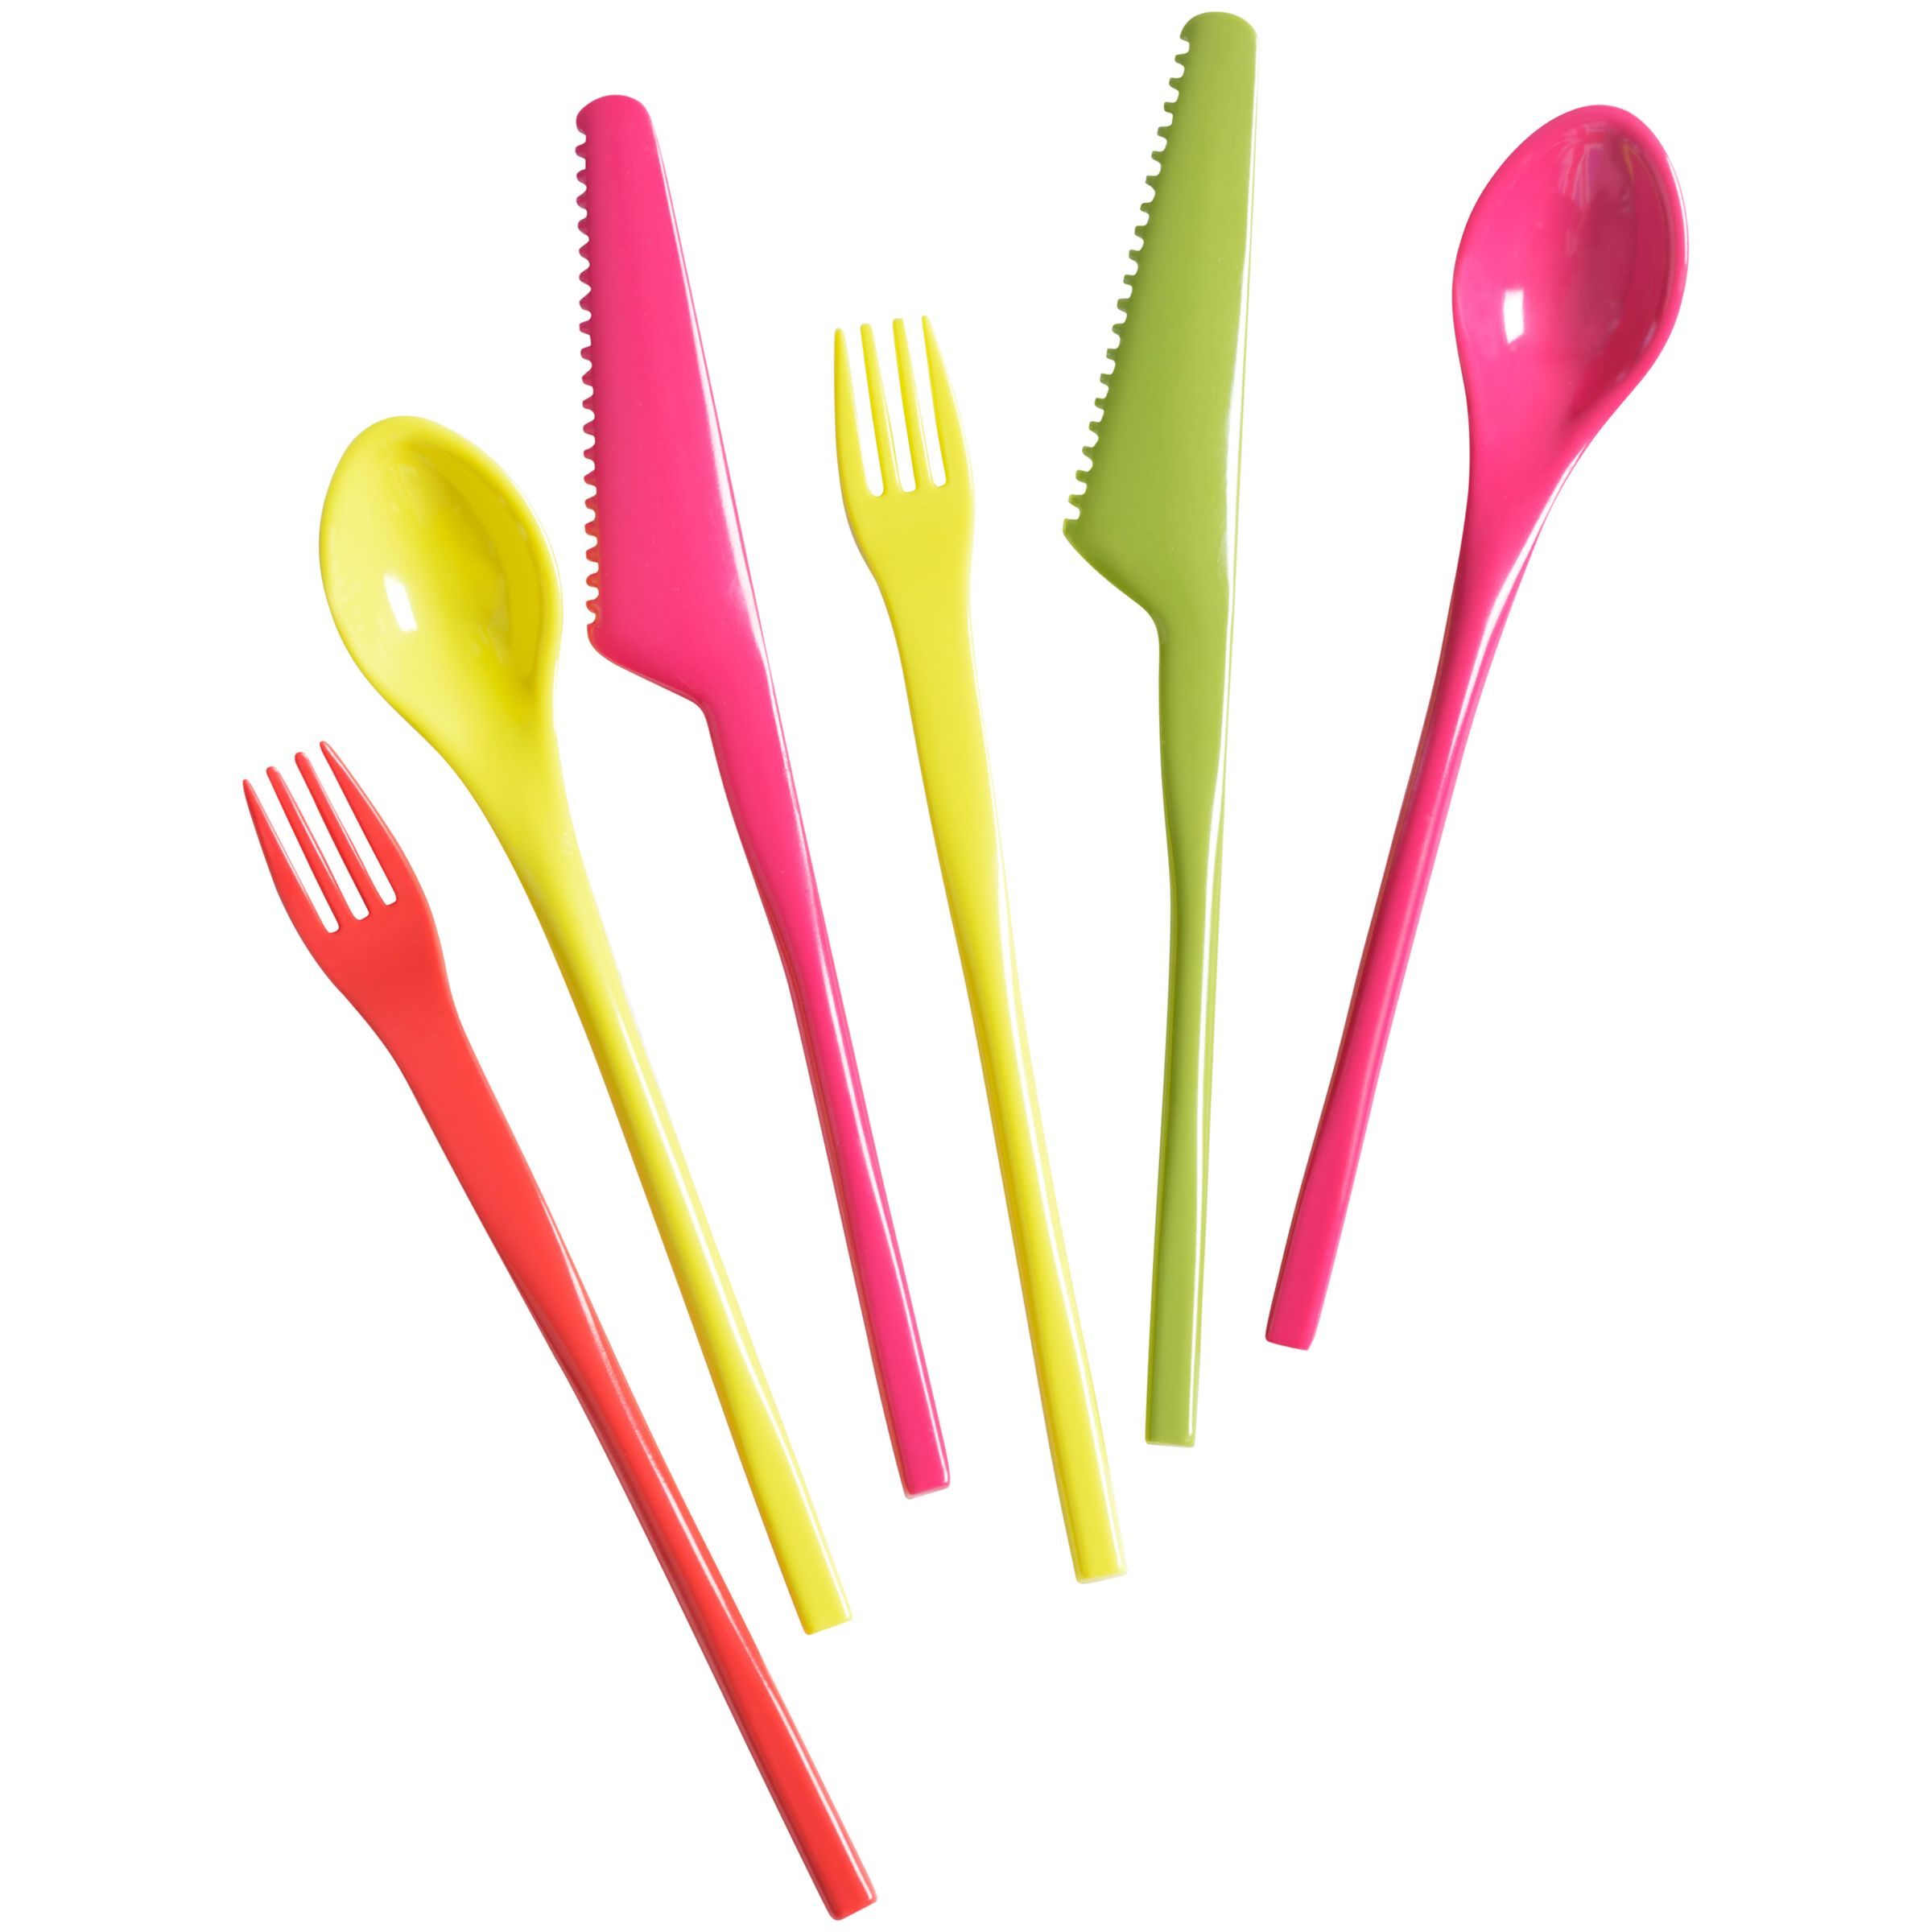 House by John Lewis Picnic Cutlery Set, 6 Piece, Multi